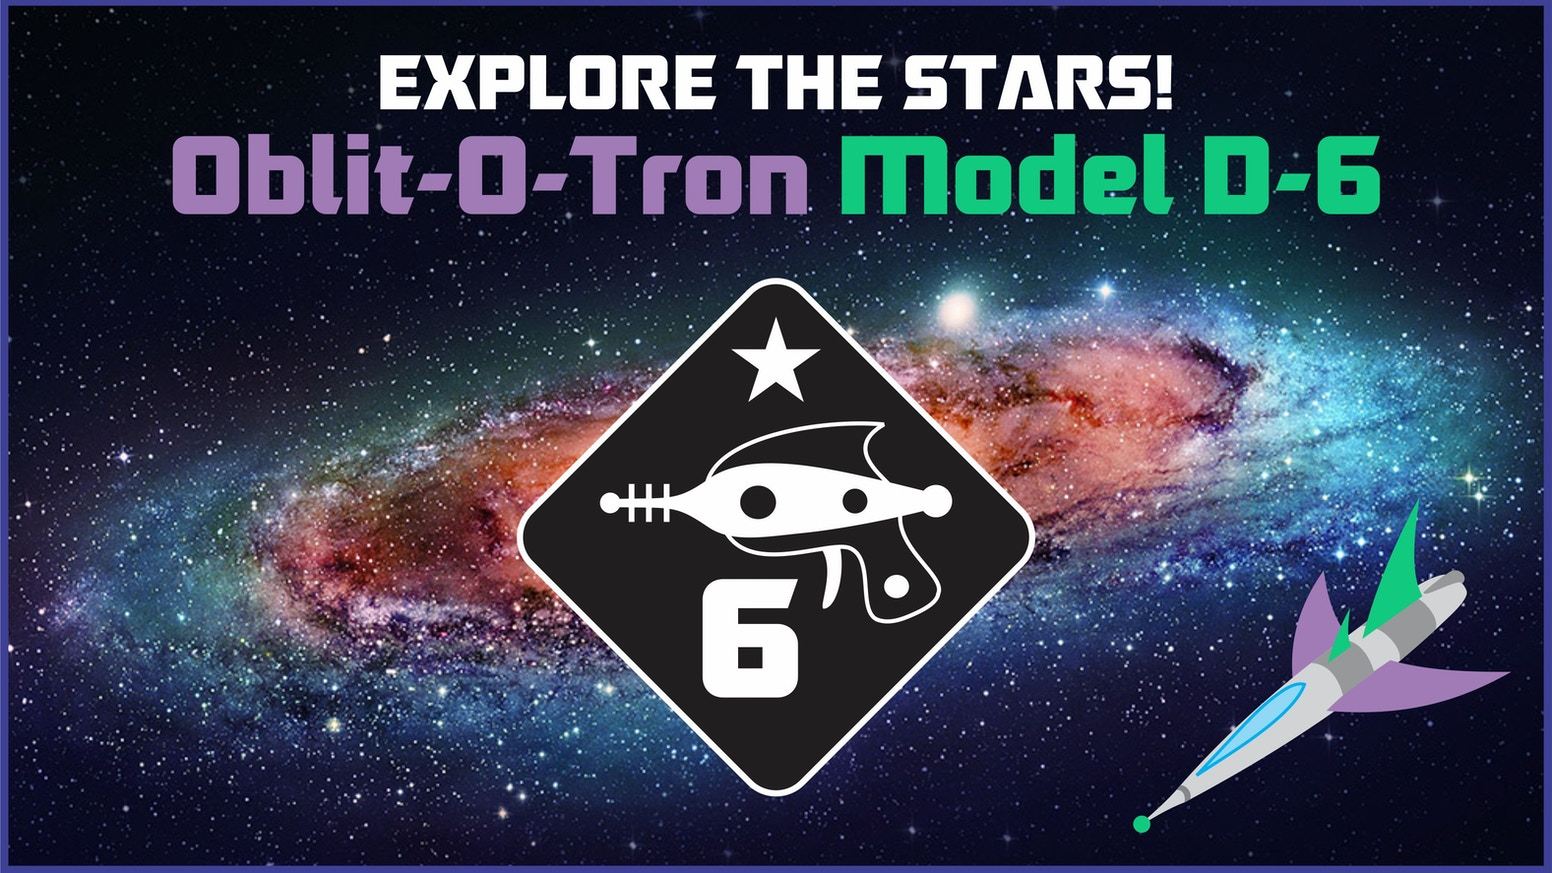 These d6s are 19mm and full of classic sci-fi theme! Explore the far reaches of space with your trusty Oblit-O-Tron D6 at your side!